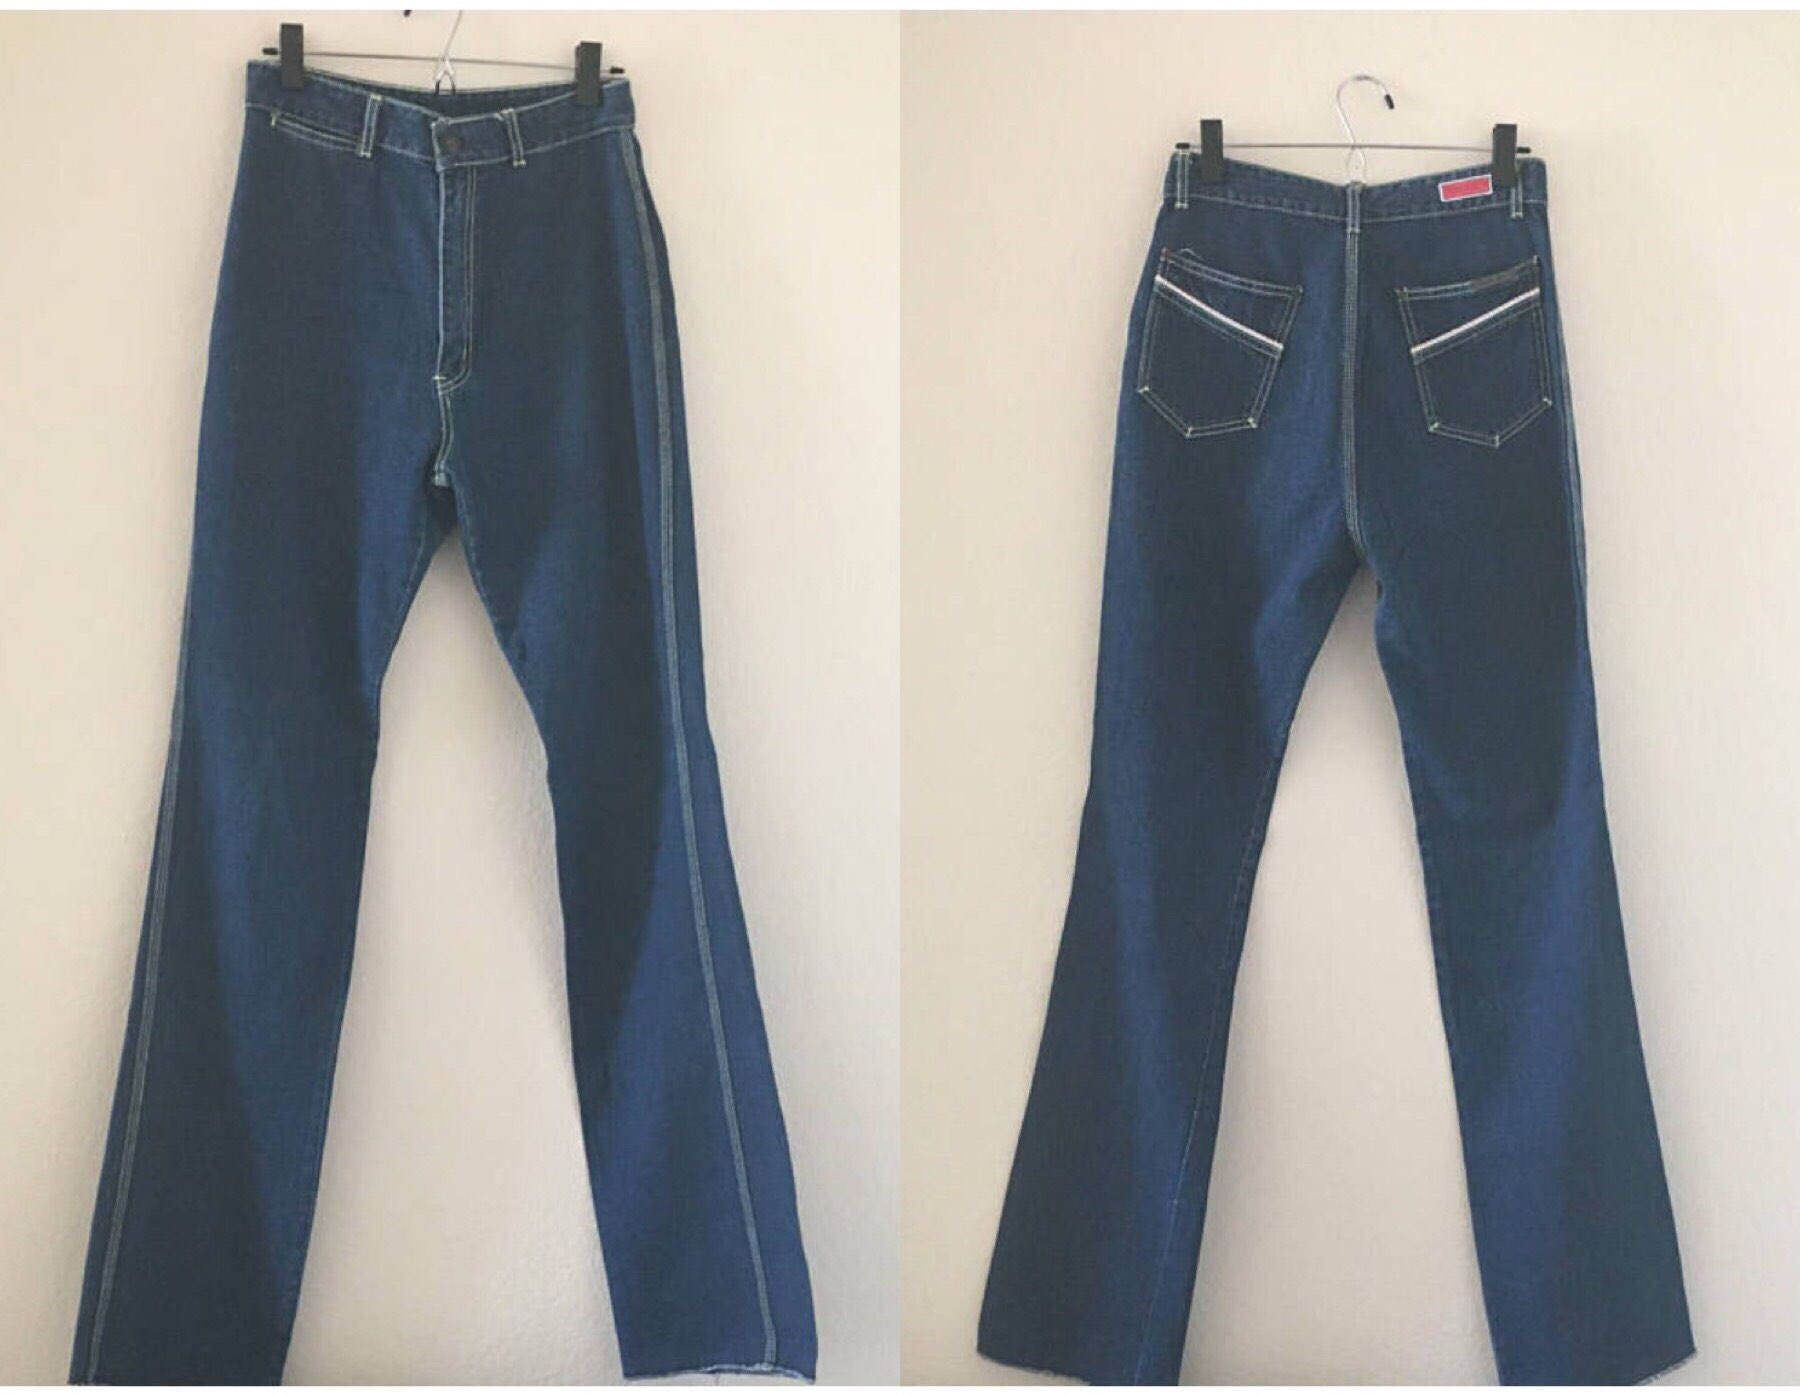 Denim - Pantalon En Denim Madd aGAMHb